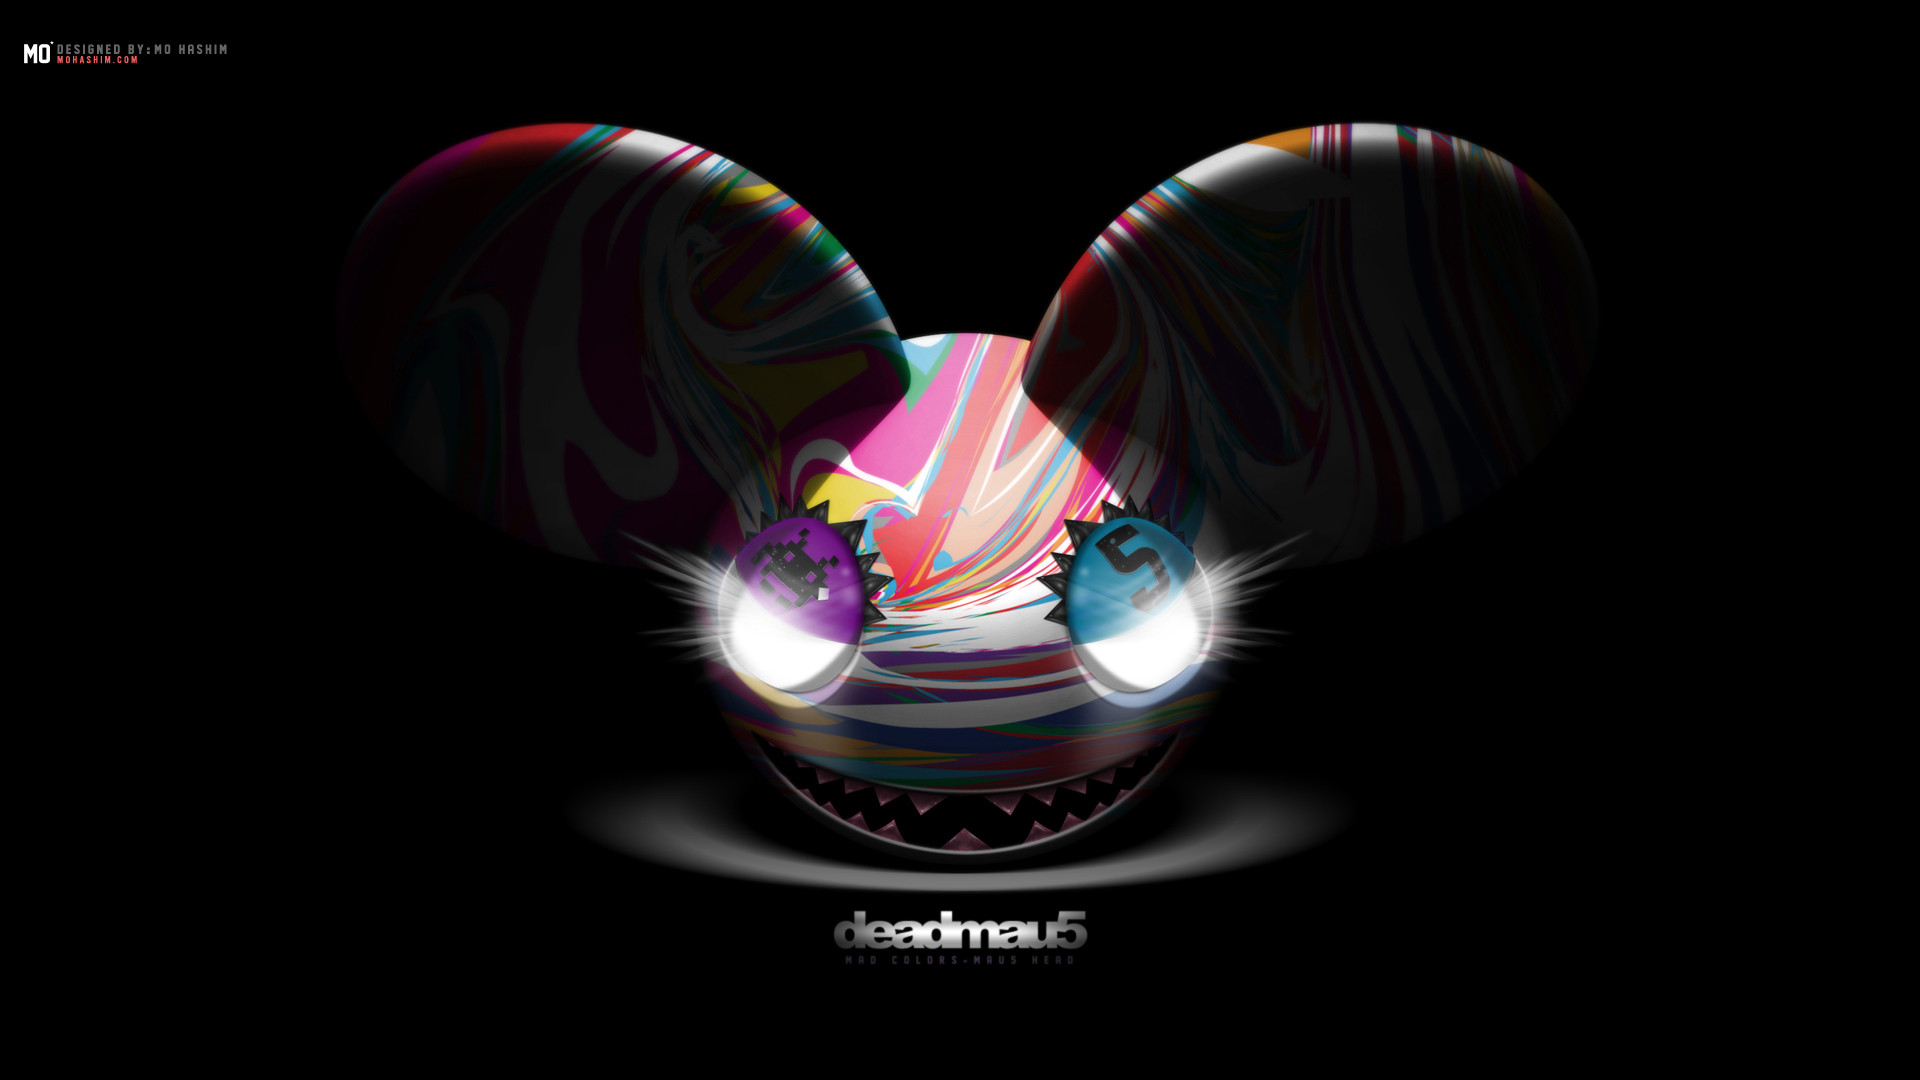 Wallpapers For Deadmau5 Phone Wallpapers 1920x1080